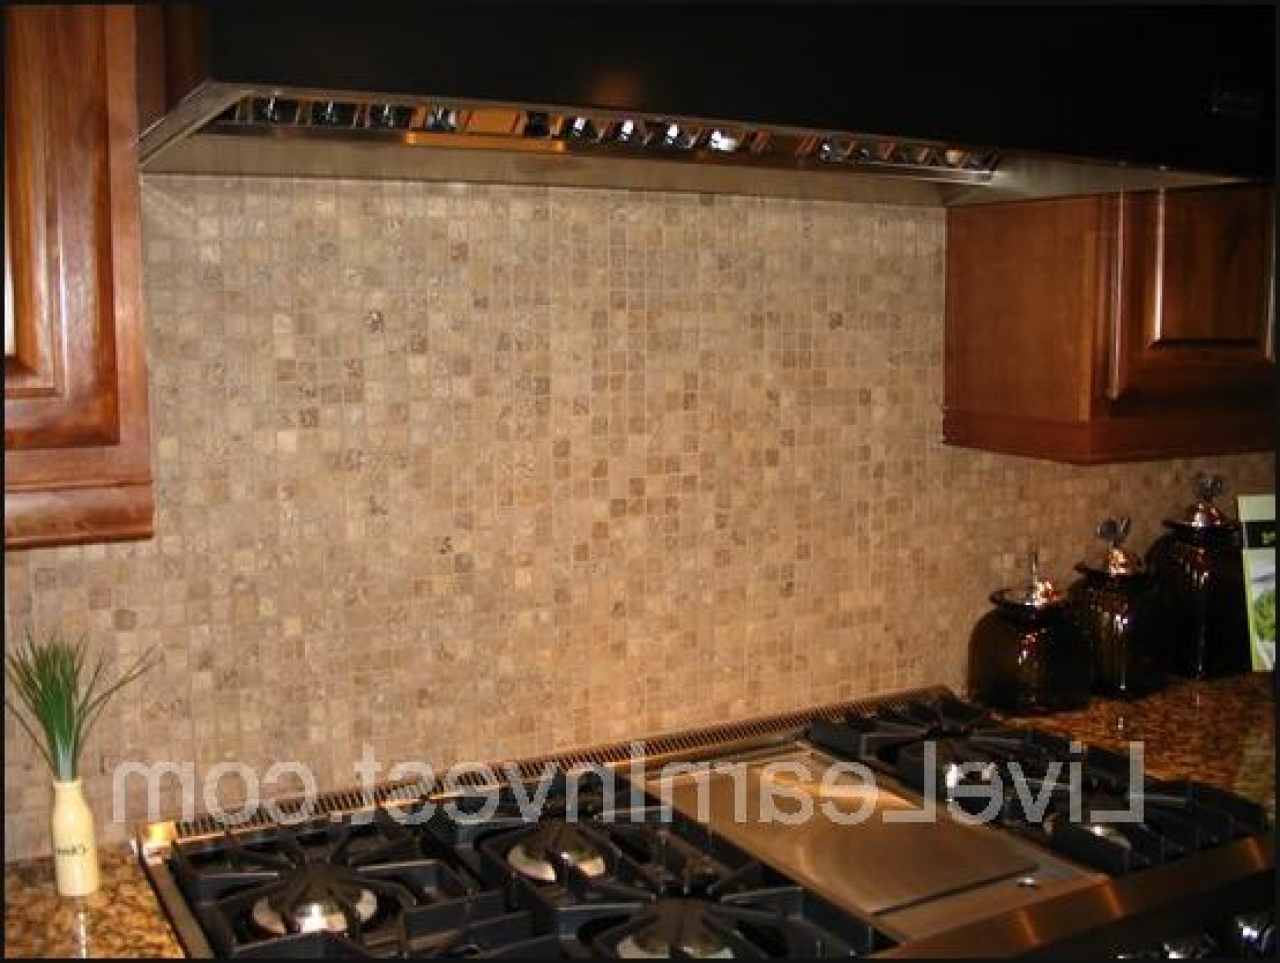 Of kitchen backsplash design ideas backsplash wallpaper in kitchen 1280x963